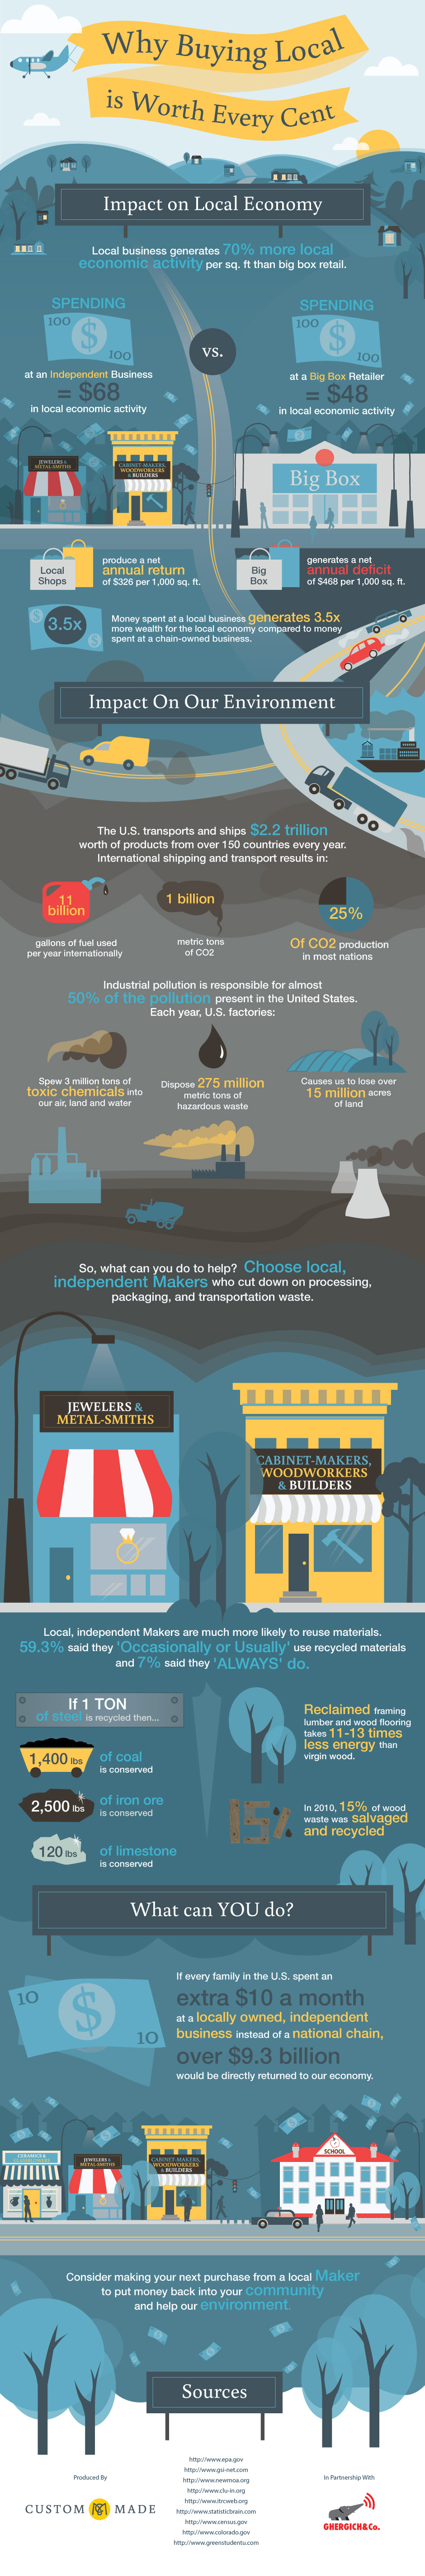 Buy Local Infographic - Photo